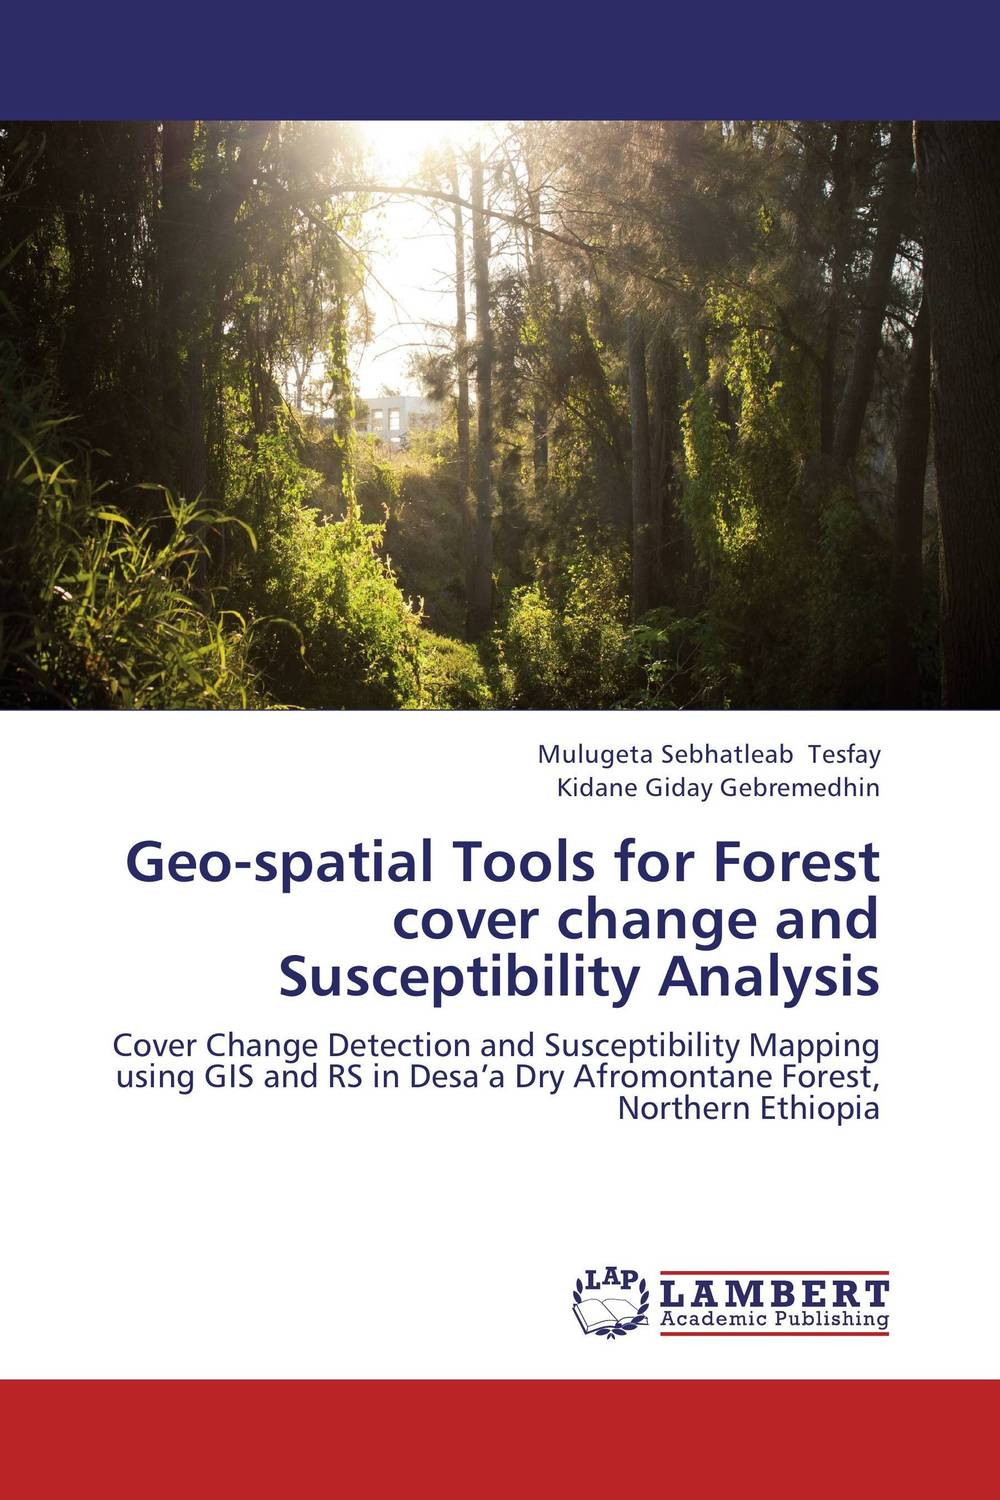 Geo-spatial Tools for Forest cover change and Susceptibility Analysis steven bragg m cost reduction analysis tools and strategies